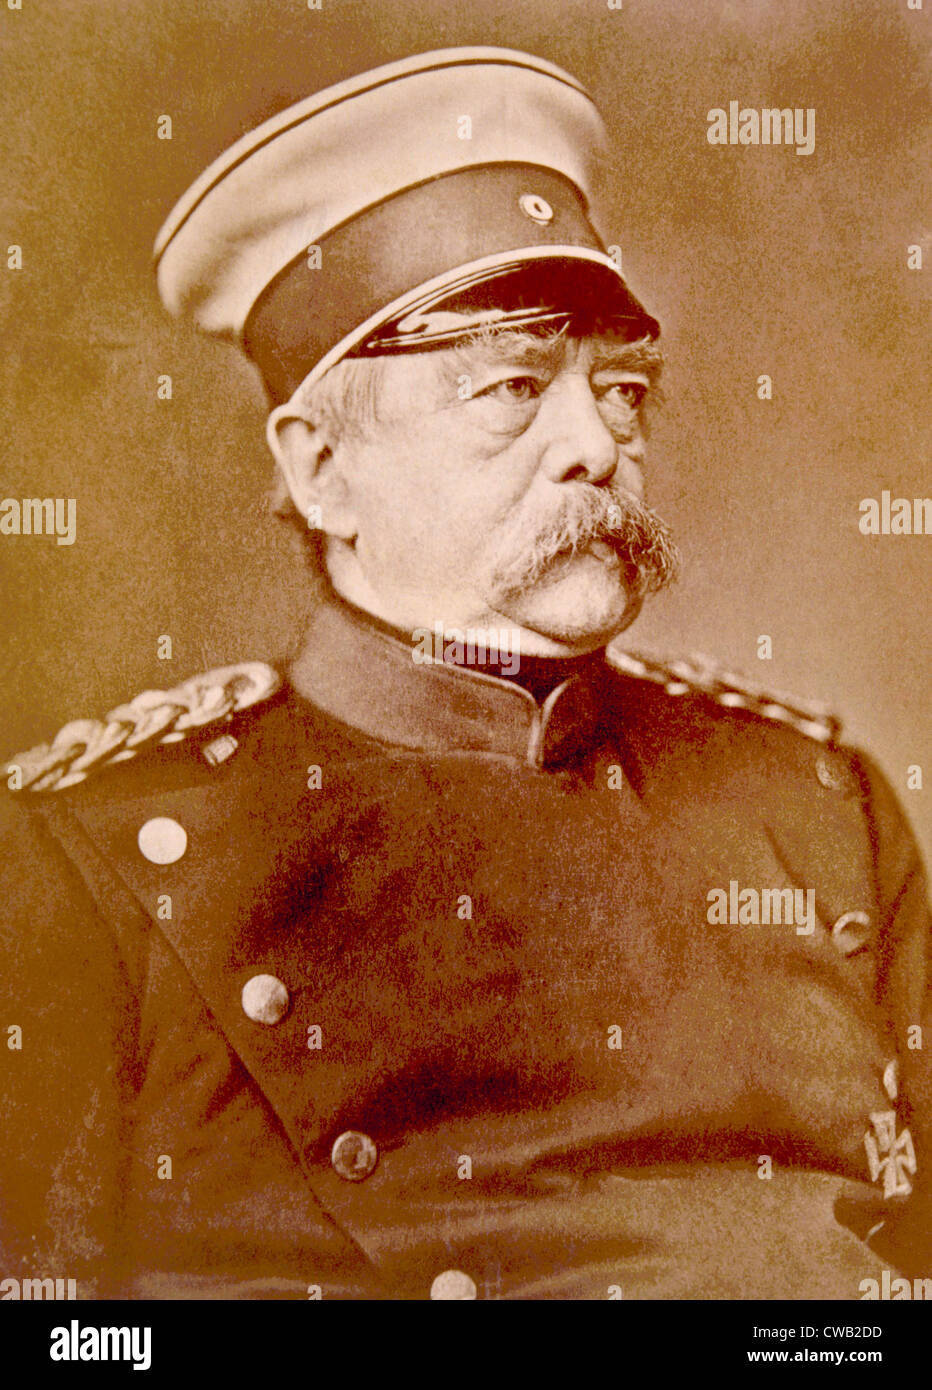 Otto von Bismarck (1815-1898), Chancellor of Germany, known as the Iron chancellor, ca. 1880 - Stock Image